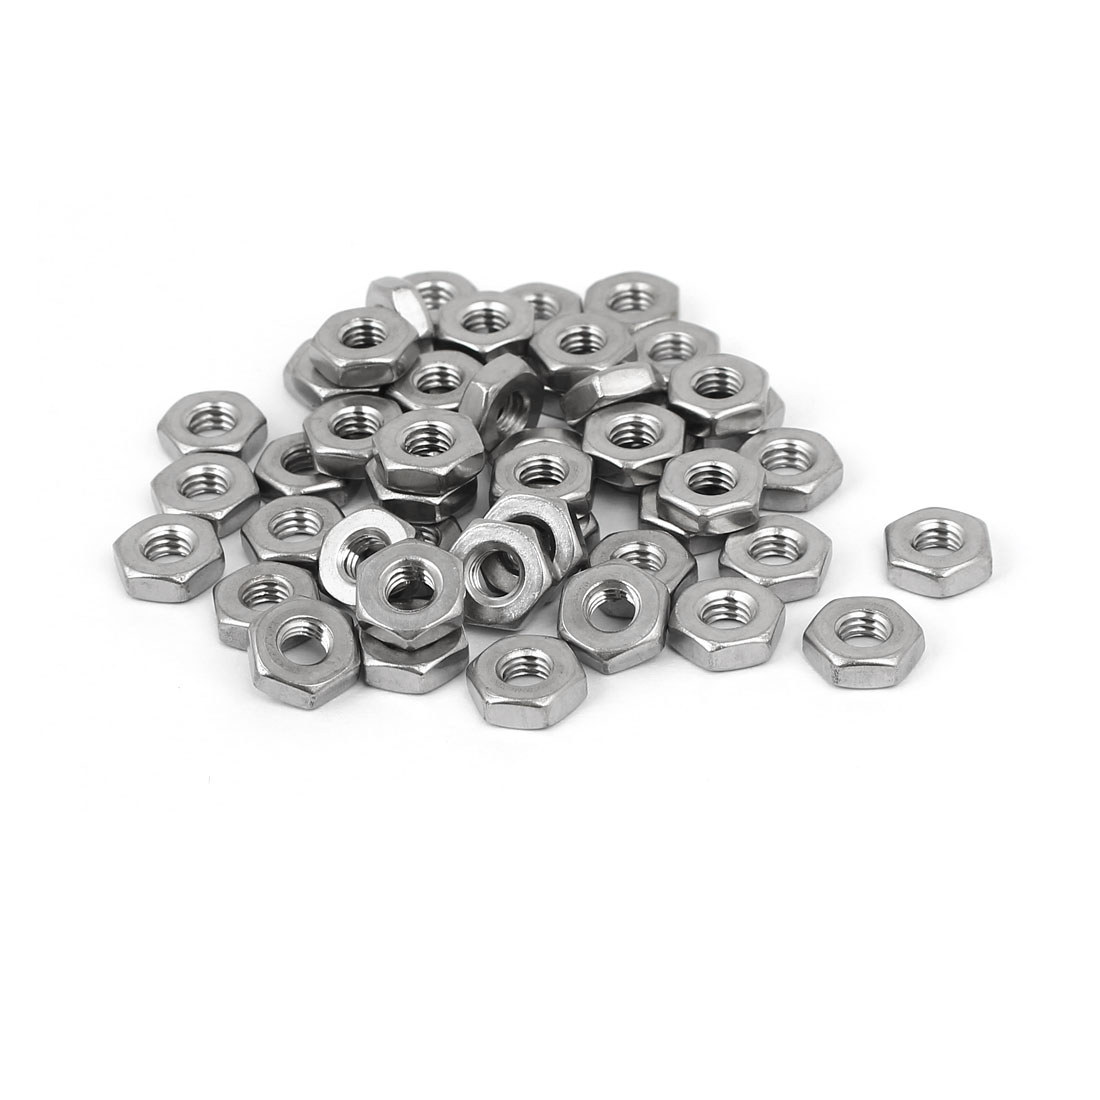 #10-32 304 Stainless Steel Finished Metric Hex Nut Silver Tone 50pcs